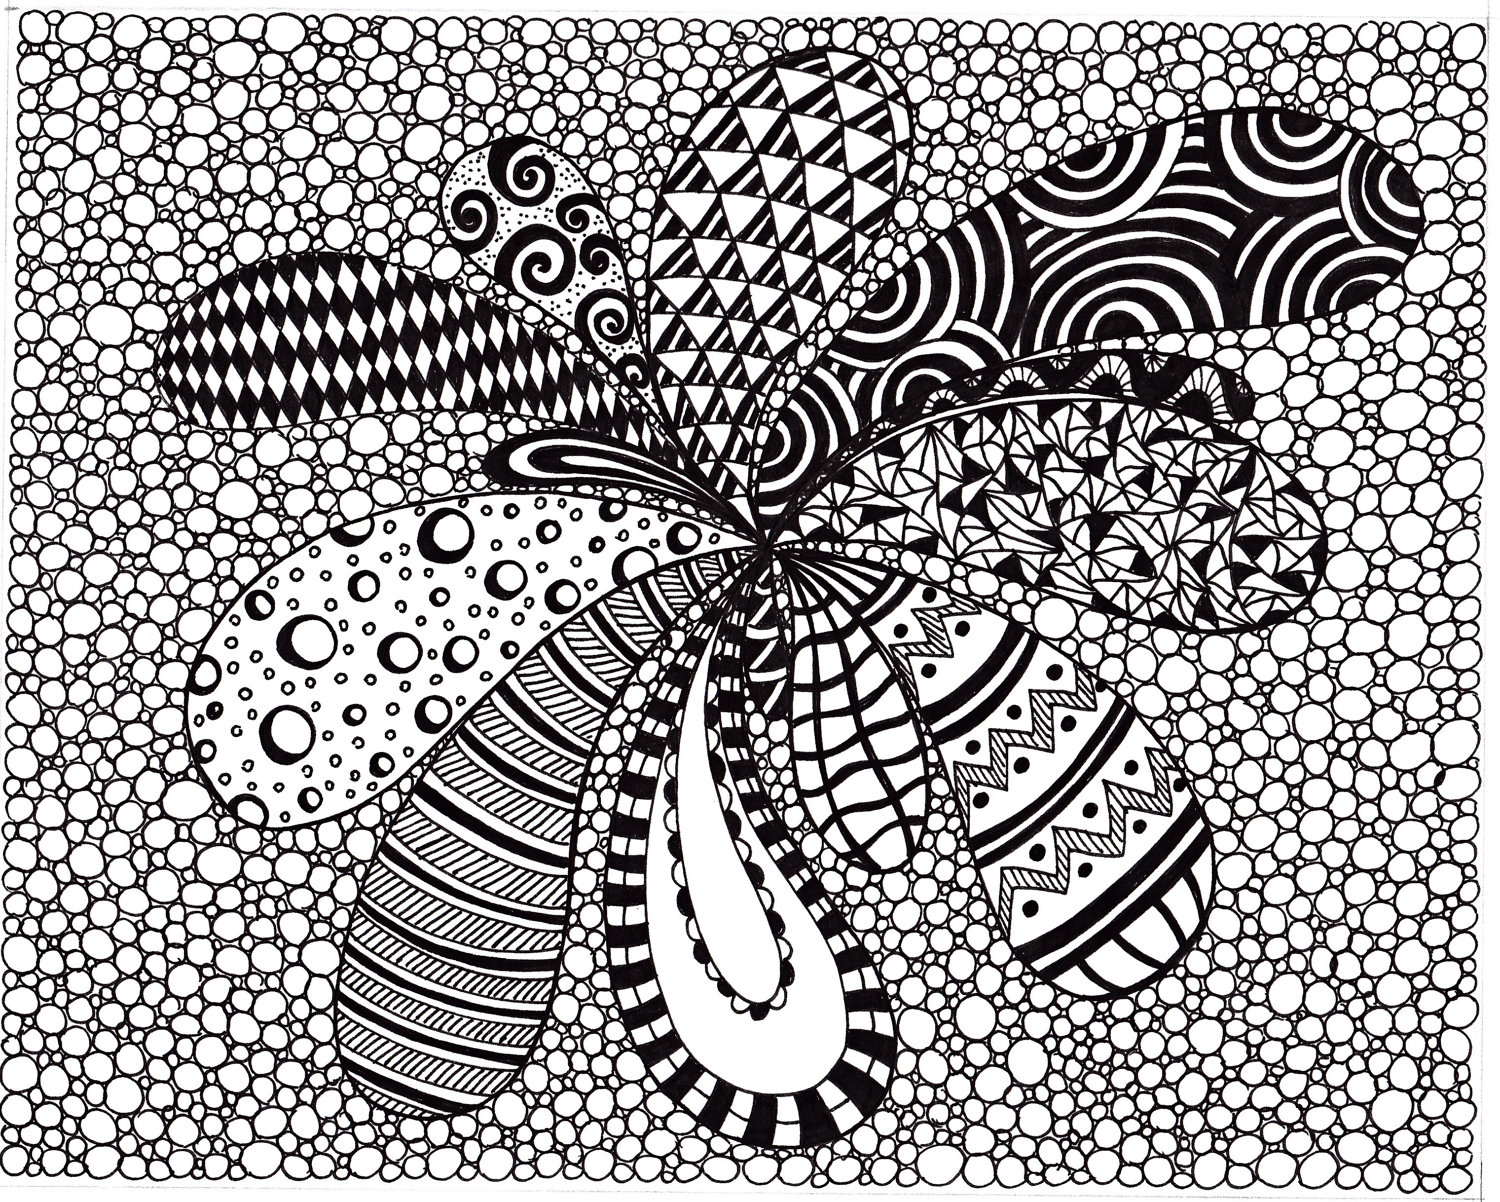 1500x1202 Cool Abstract Drawings Black And White Abstract Drawings 28 Cool